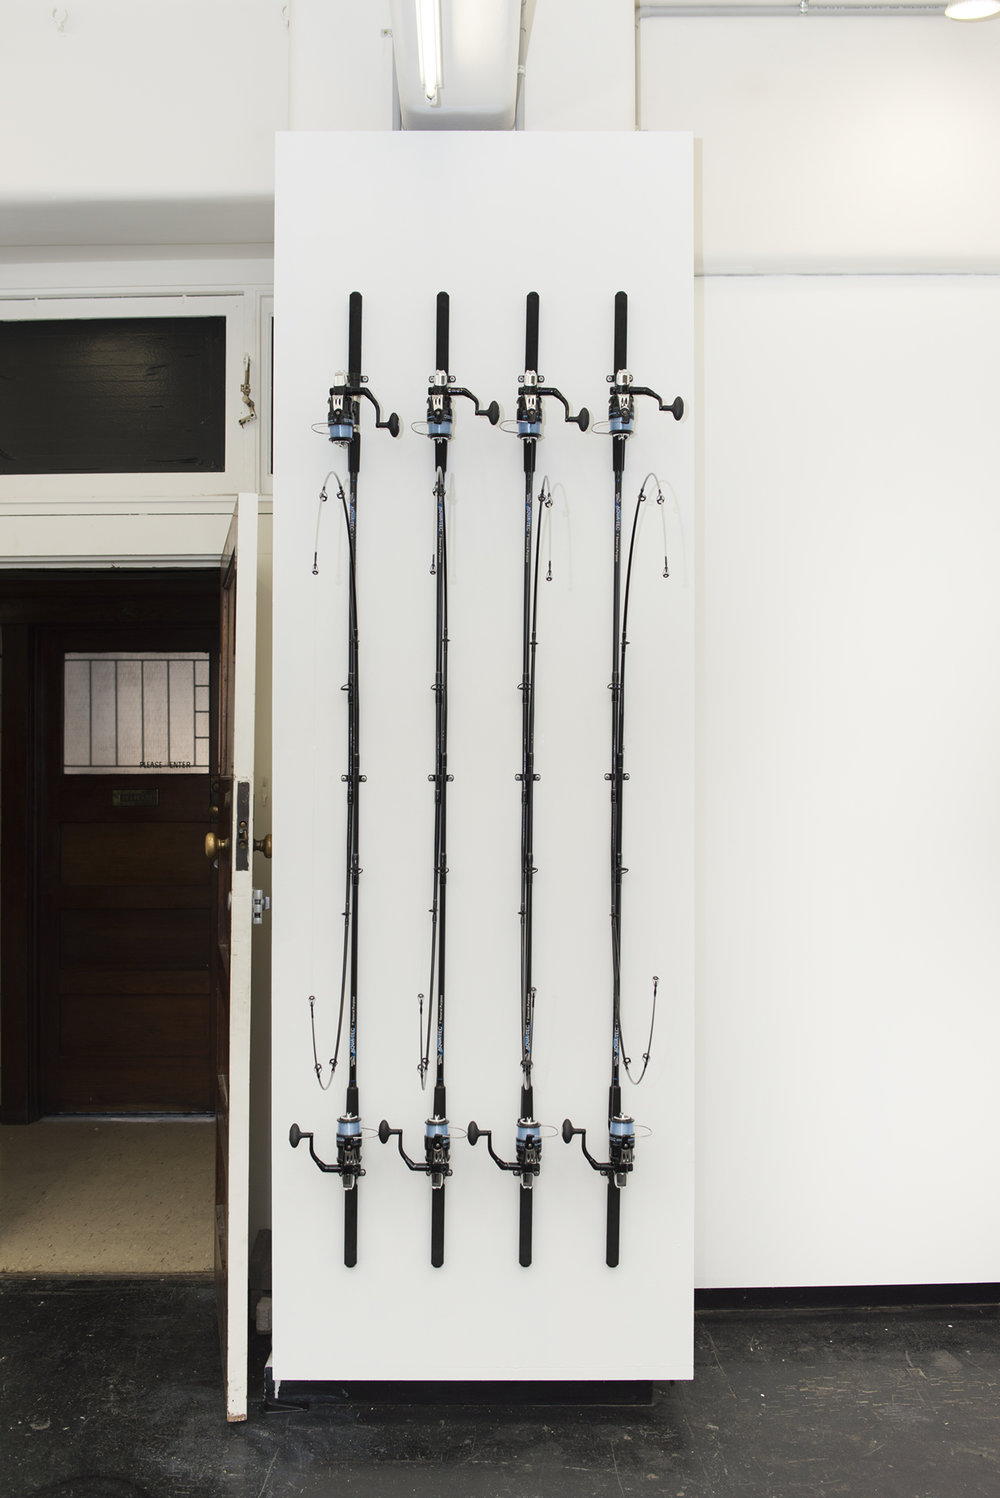 In-tension, fishing rods, 220 x 78 x 50 cm